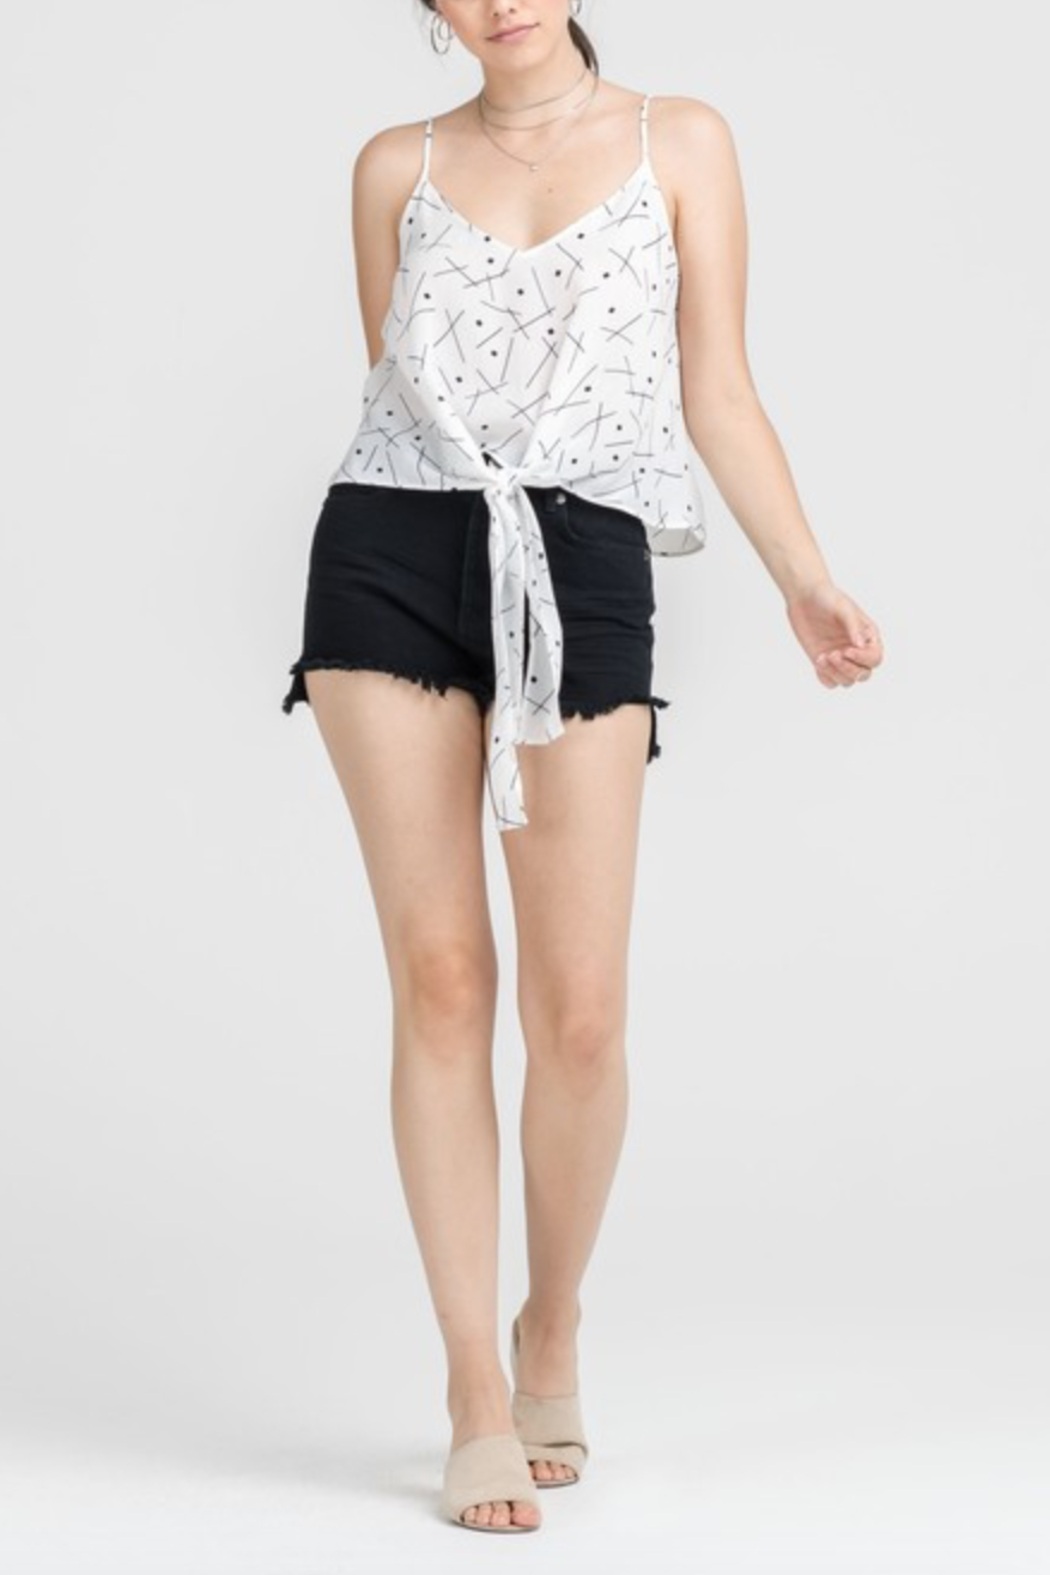 Lush Clothing  Tie Front Tank Top - Main Image